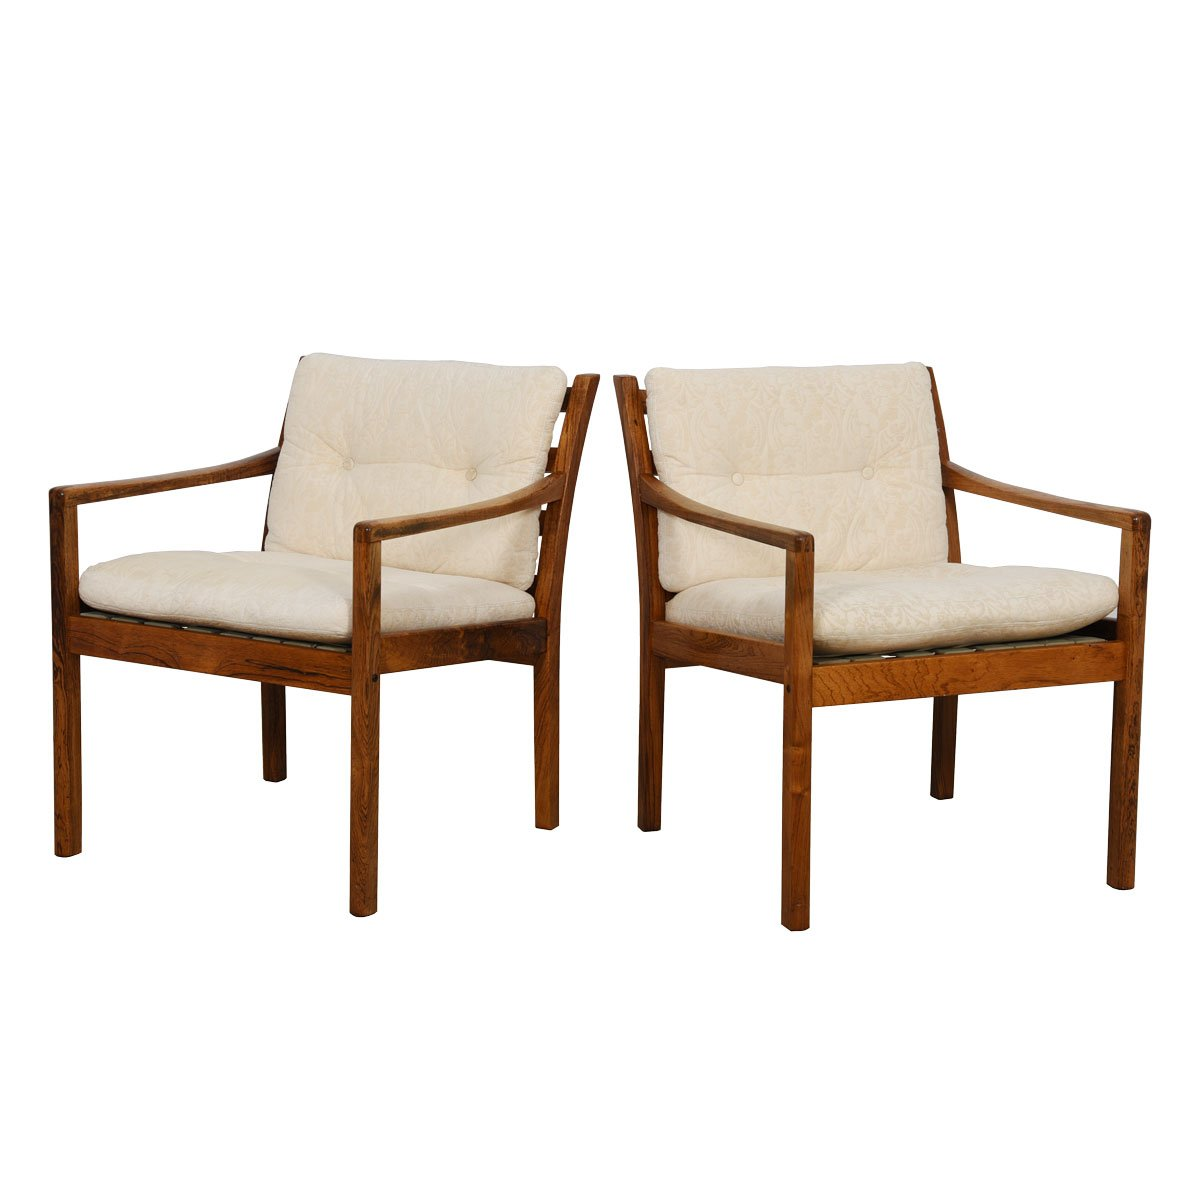 Pair of Danish Modern Rosewood Accent Chairs